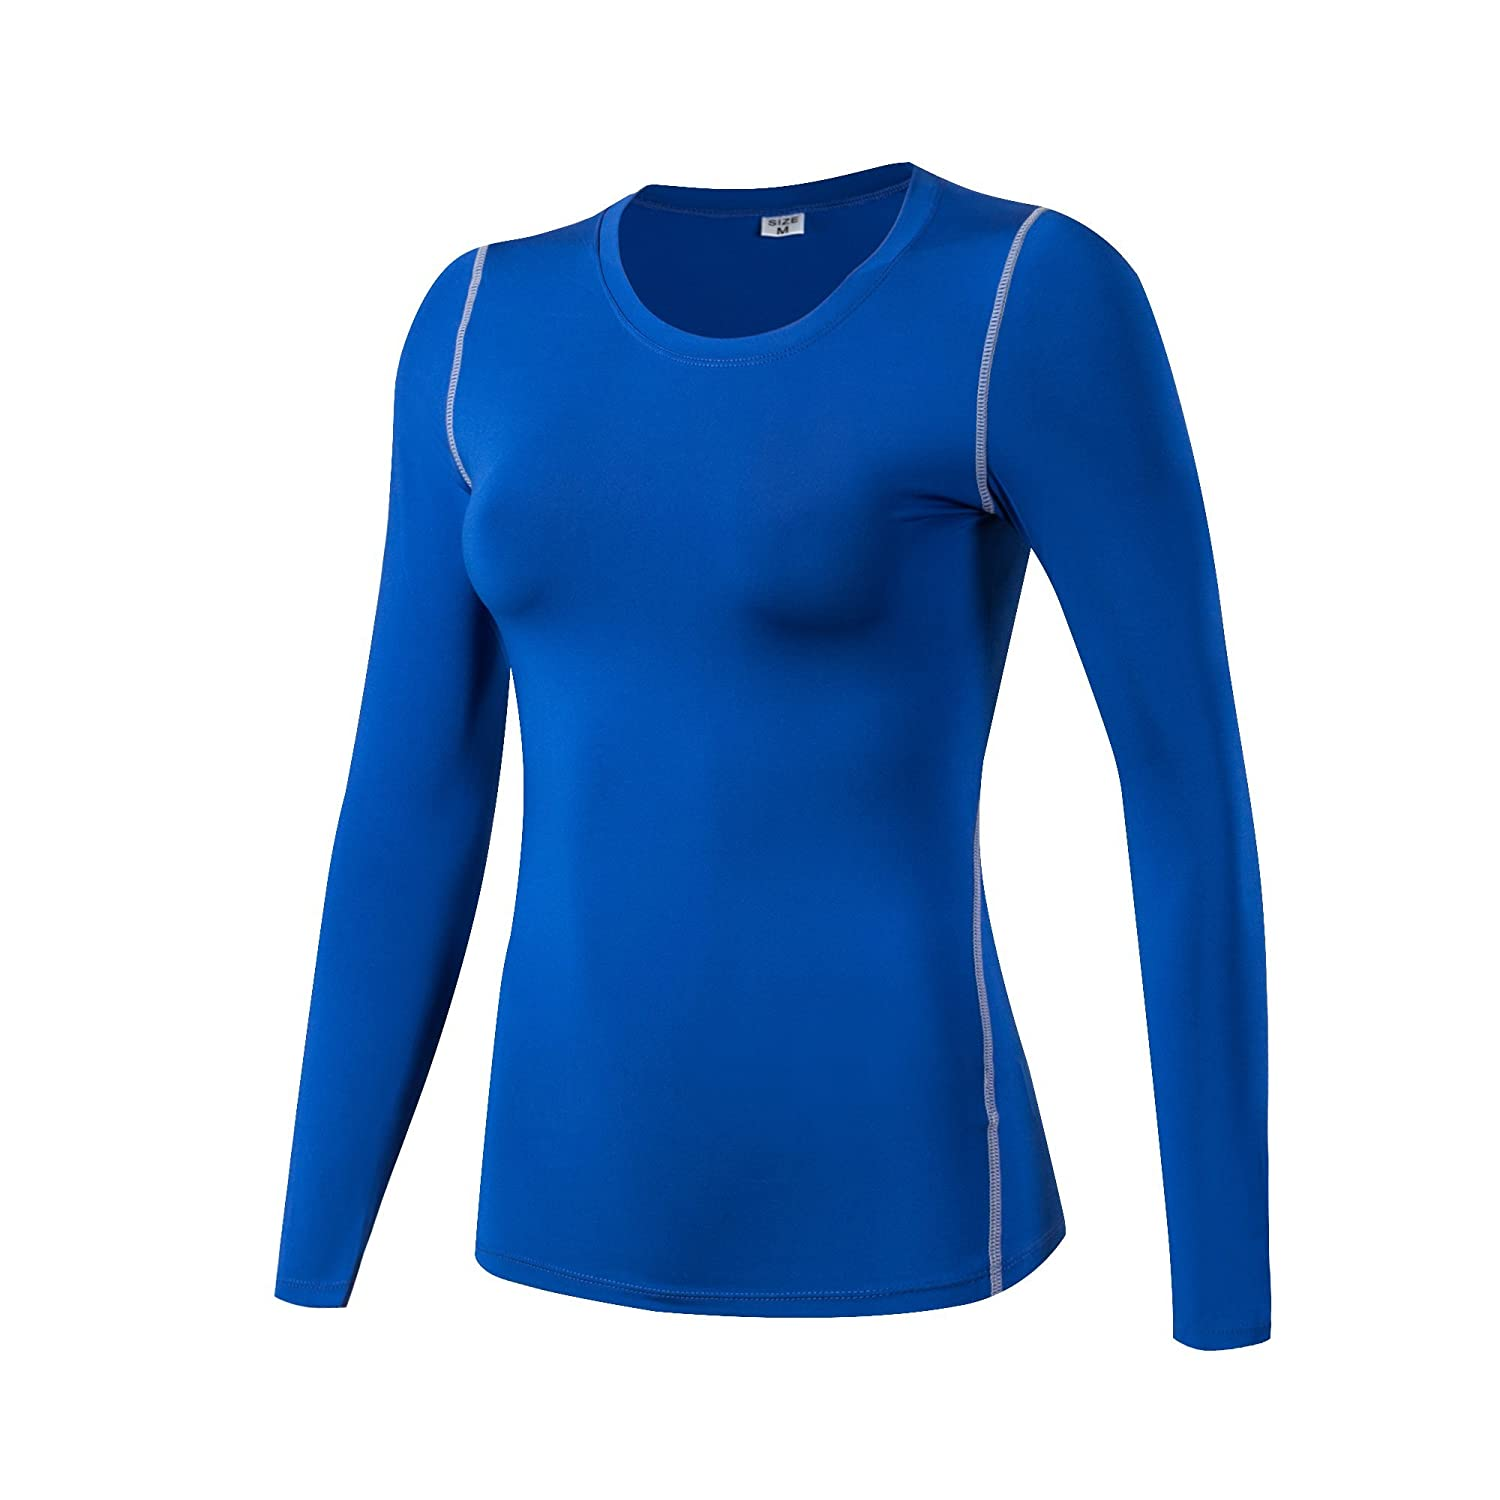 Barrageon Women's Elastic Compression Shirt T-shirt Top Base Layer Exercise Fitness Yoga Pilates Gym Cross Training Running Jogging Long Sleeve Quick Dry Suppresses Sweat Skin Fit Crewneck Thermal Sweatshirt Workout